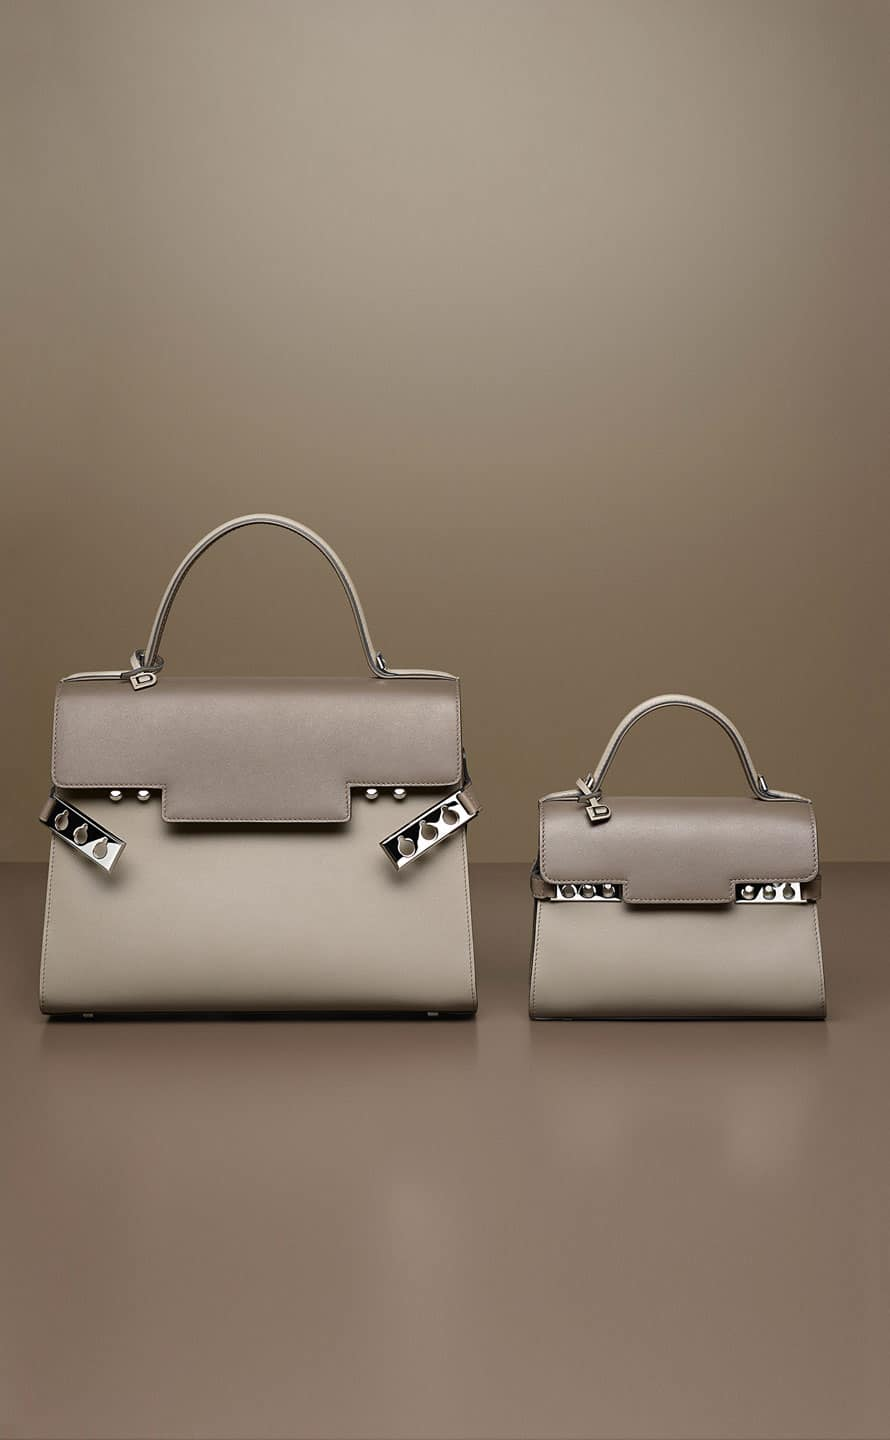 delvaux fallwinter 2016 bag collection featuring the